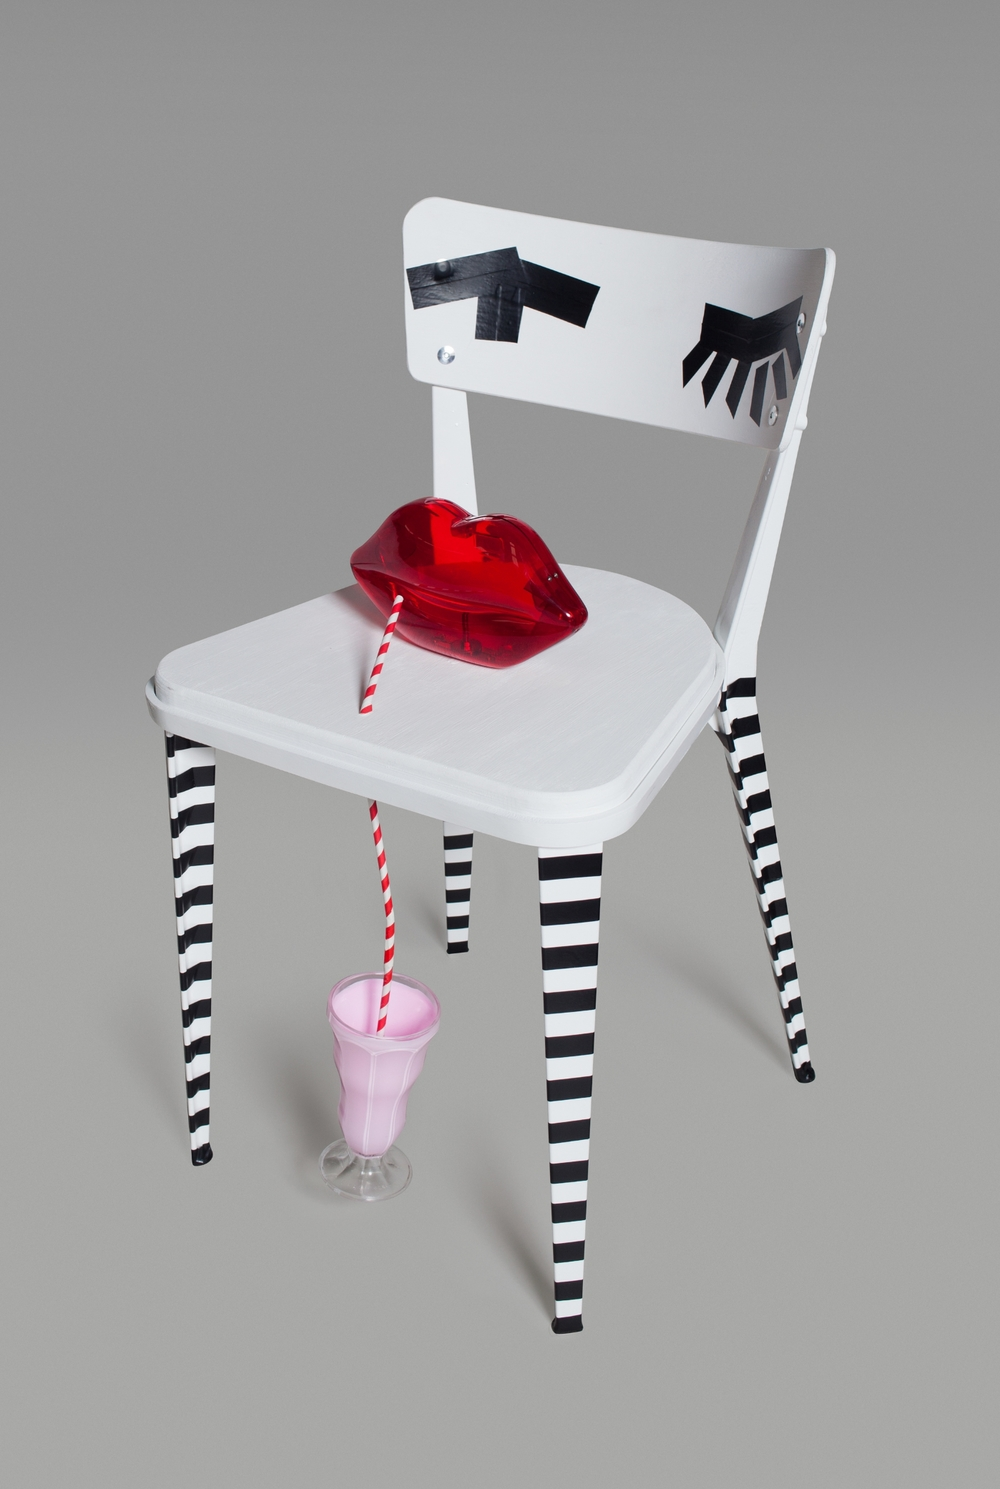 15_Lulu_Guinness_Chair_Carl_Glover.jpg